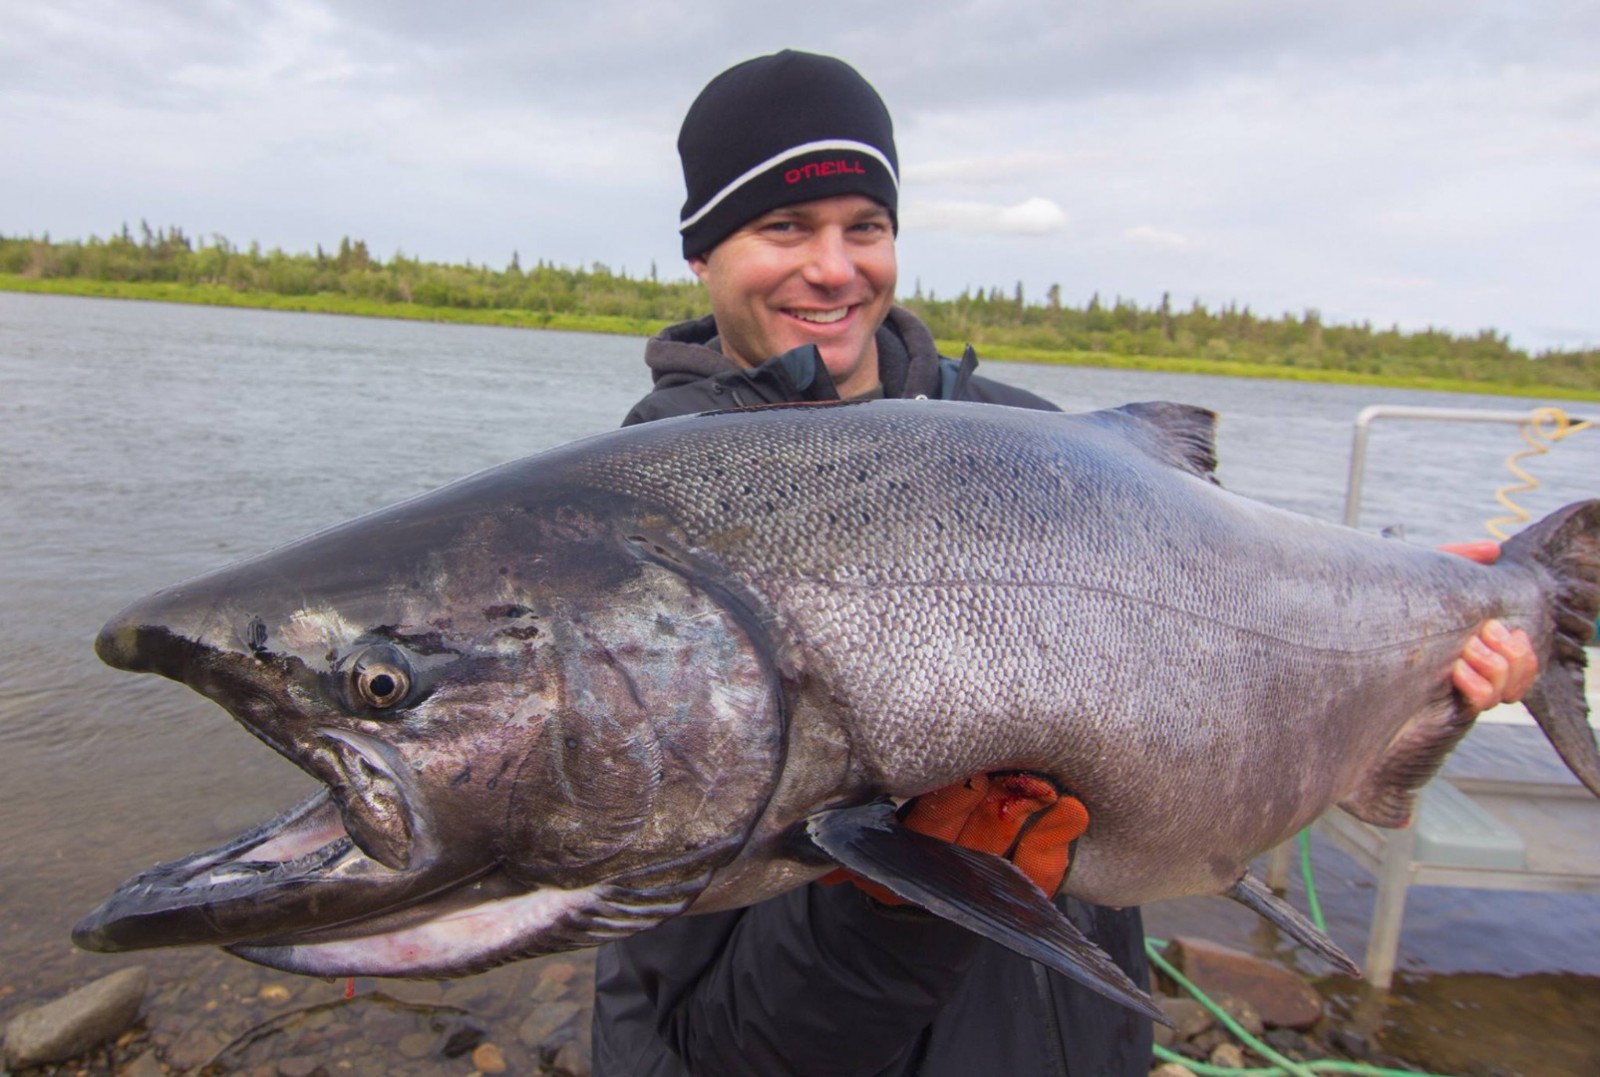 Alaska king salmon adventures southwest alaska my for Alaskan salmon fishing